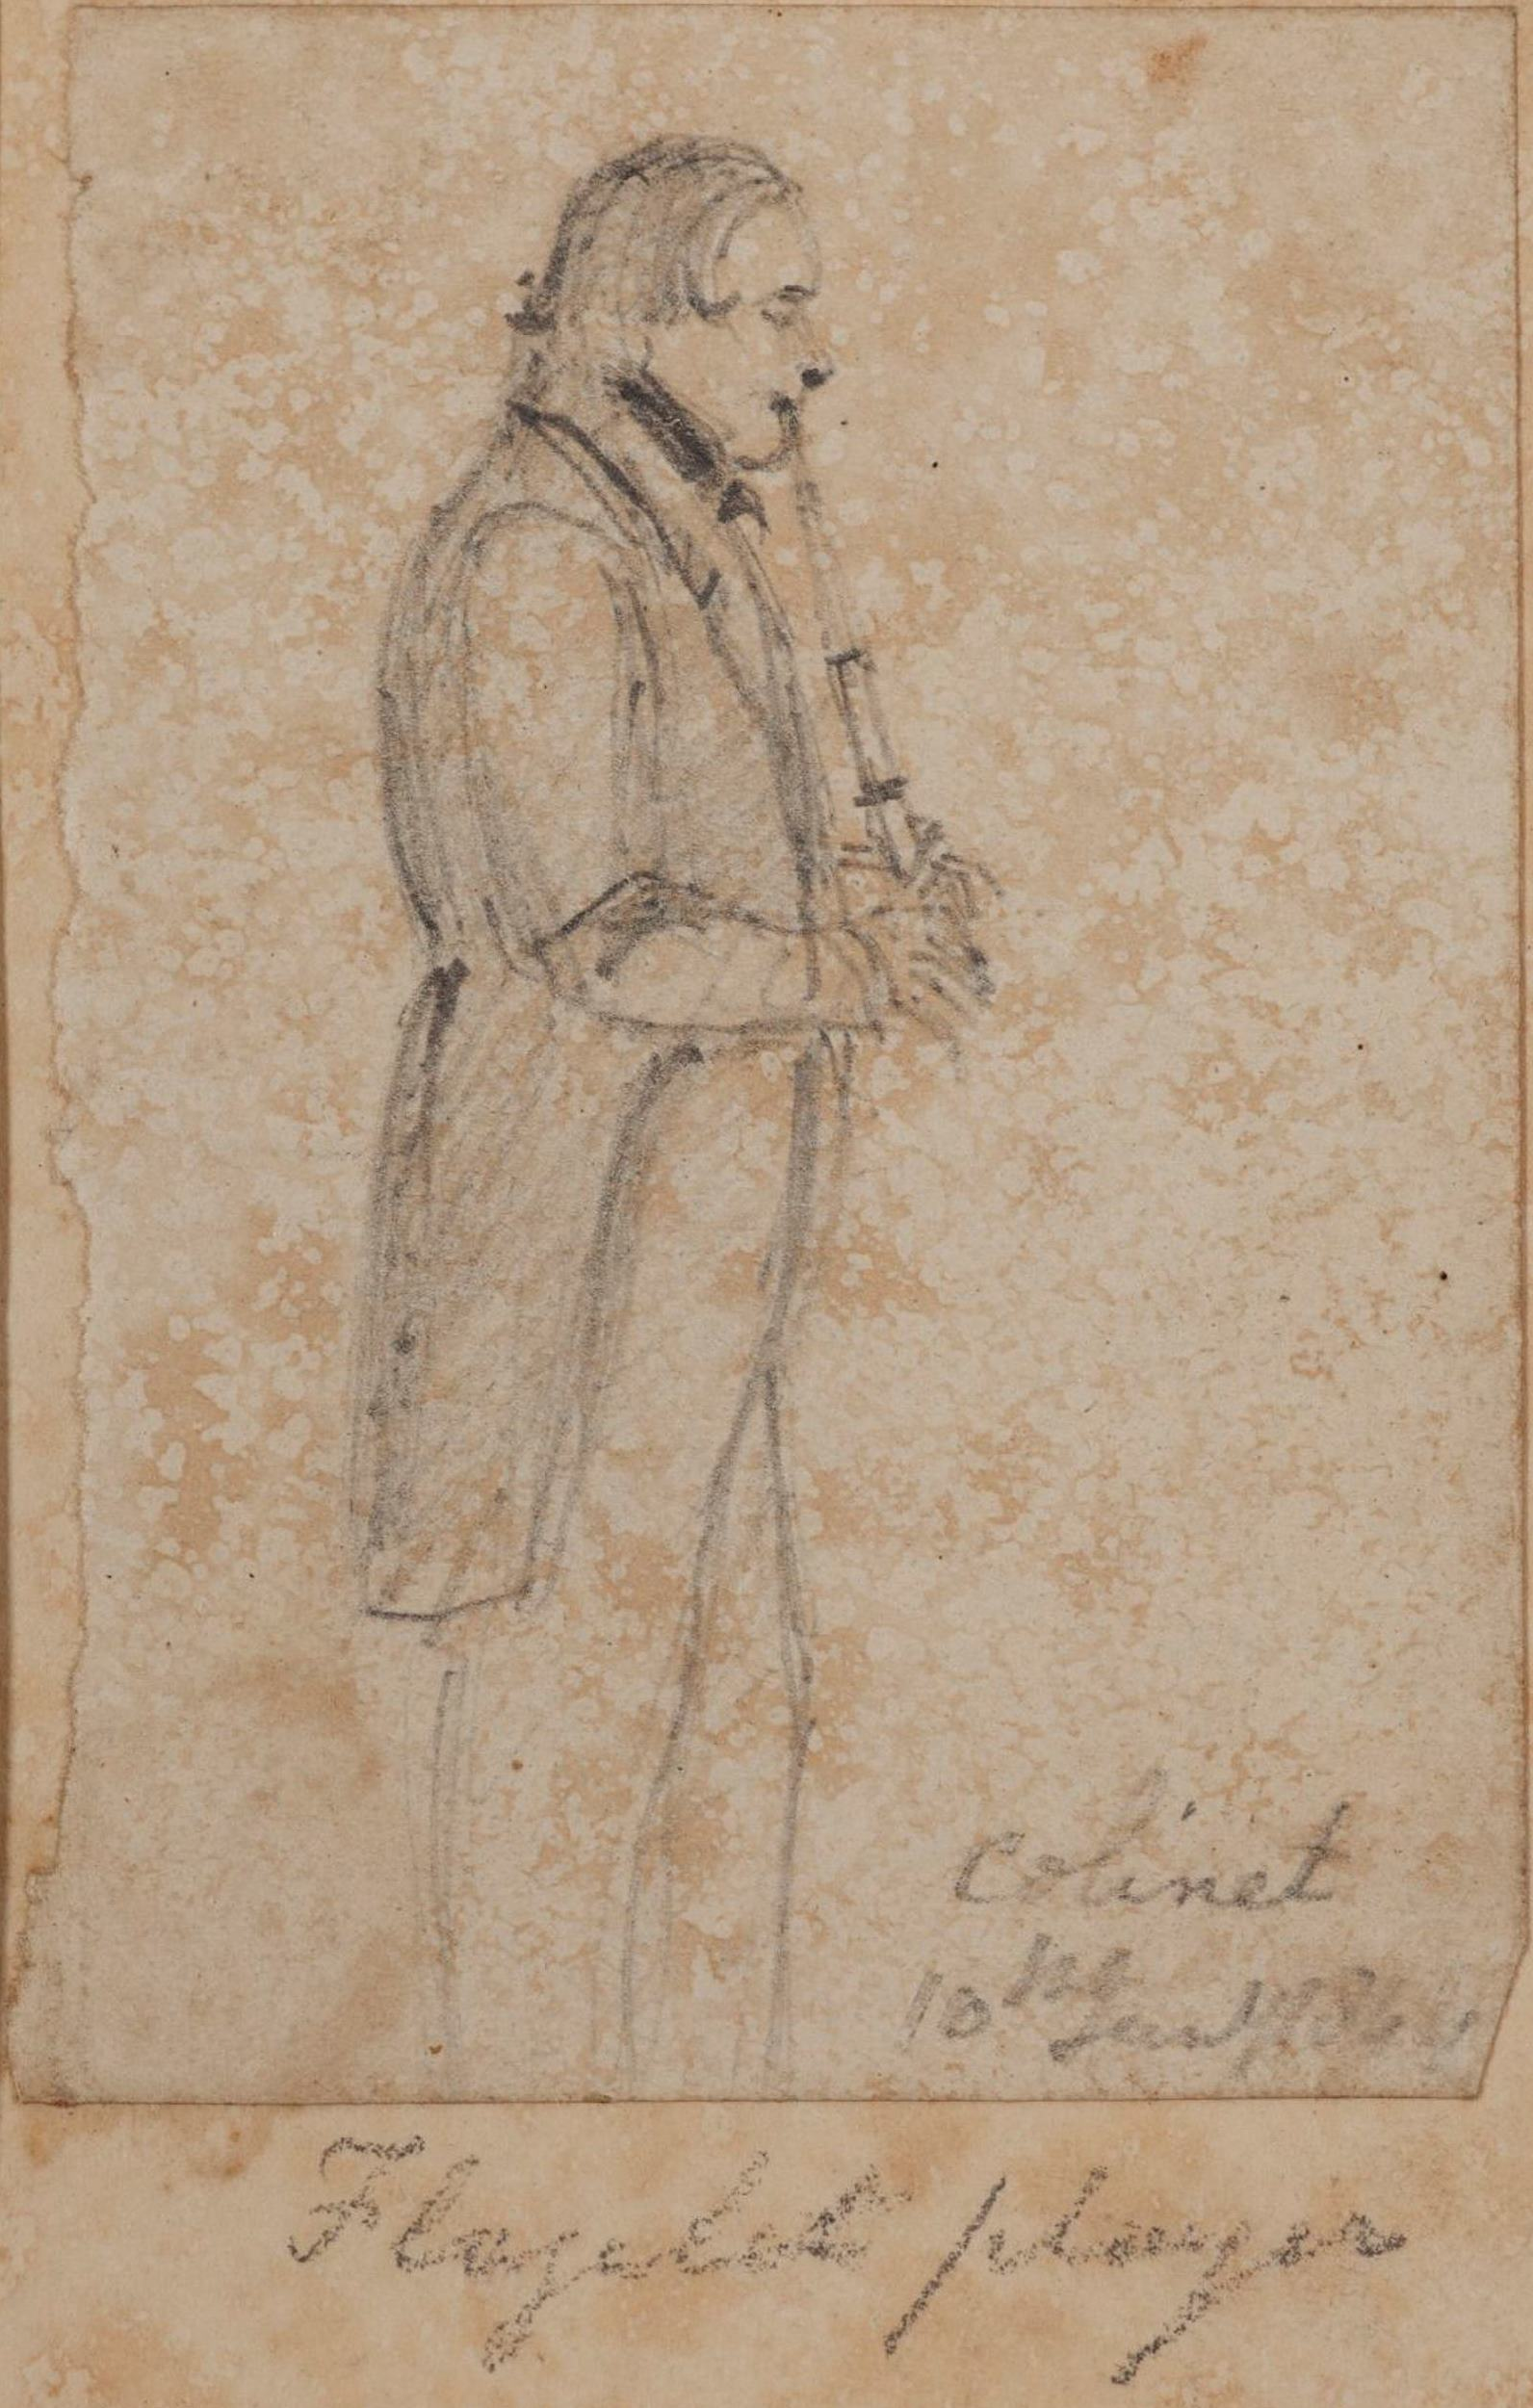 Flageolet player, Colinet, 10th January 1844 / Thomas Wingate (attrib.)